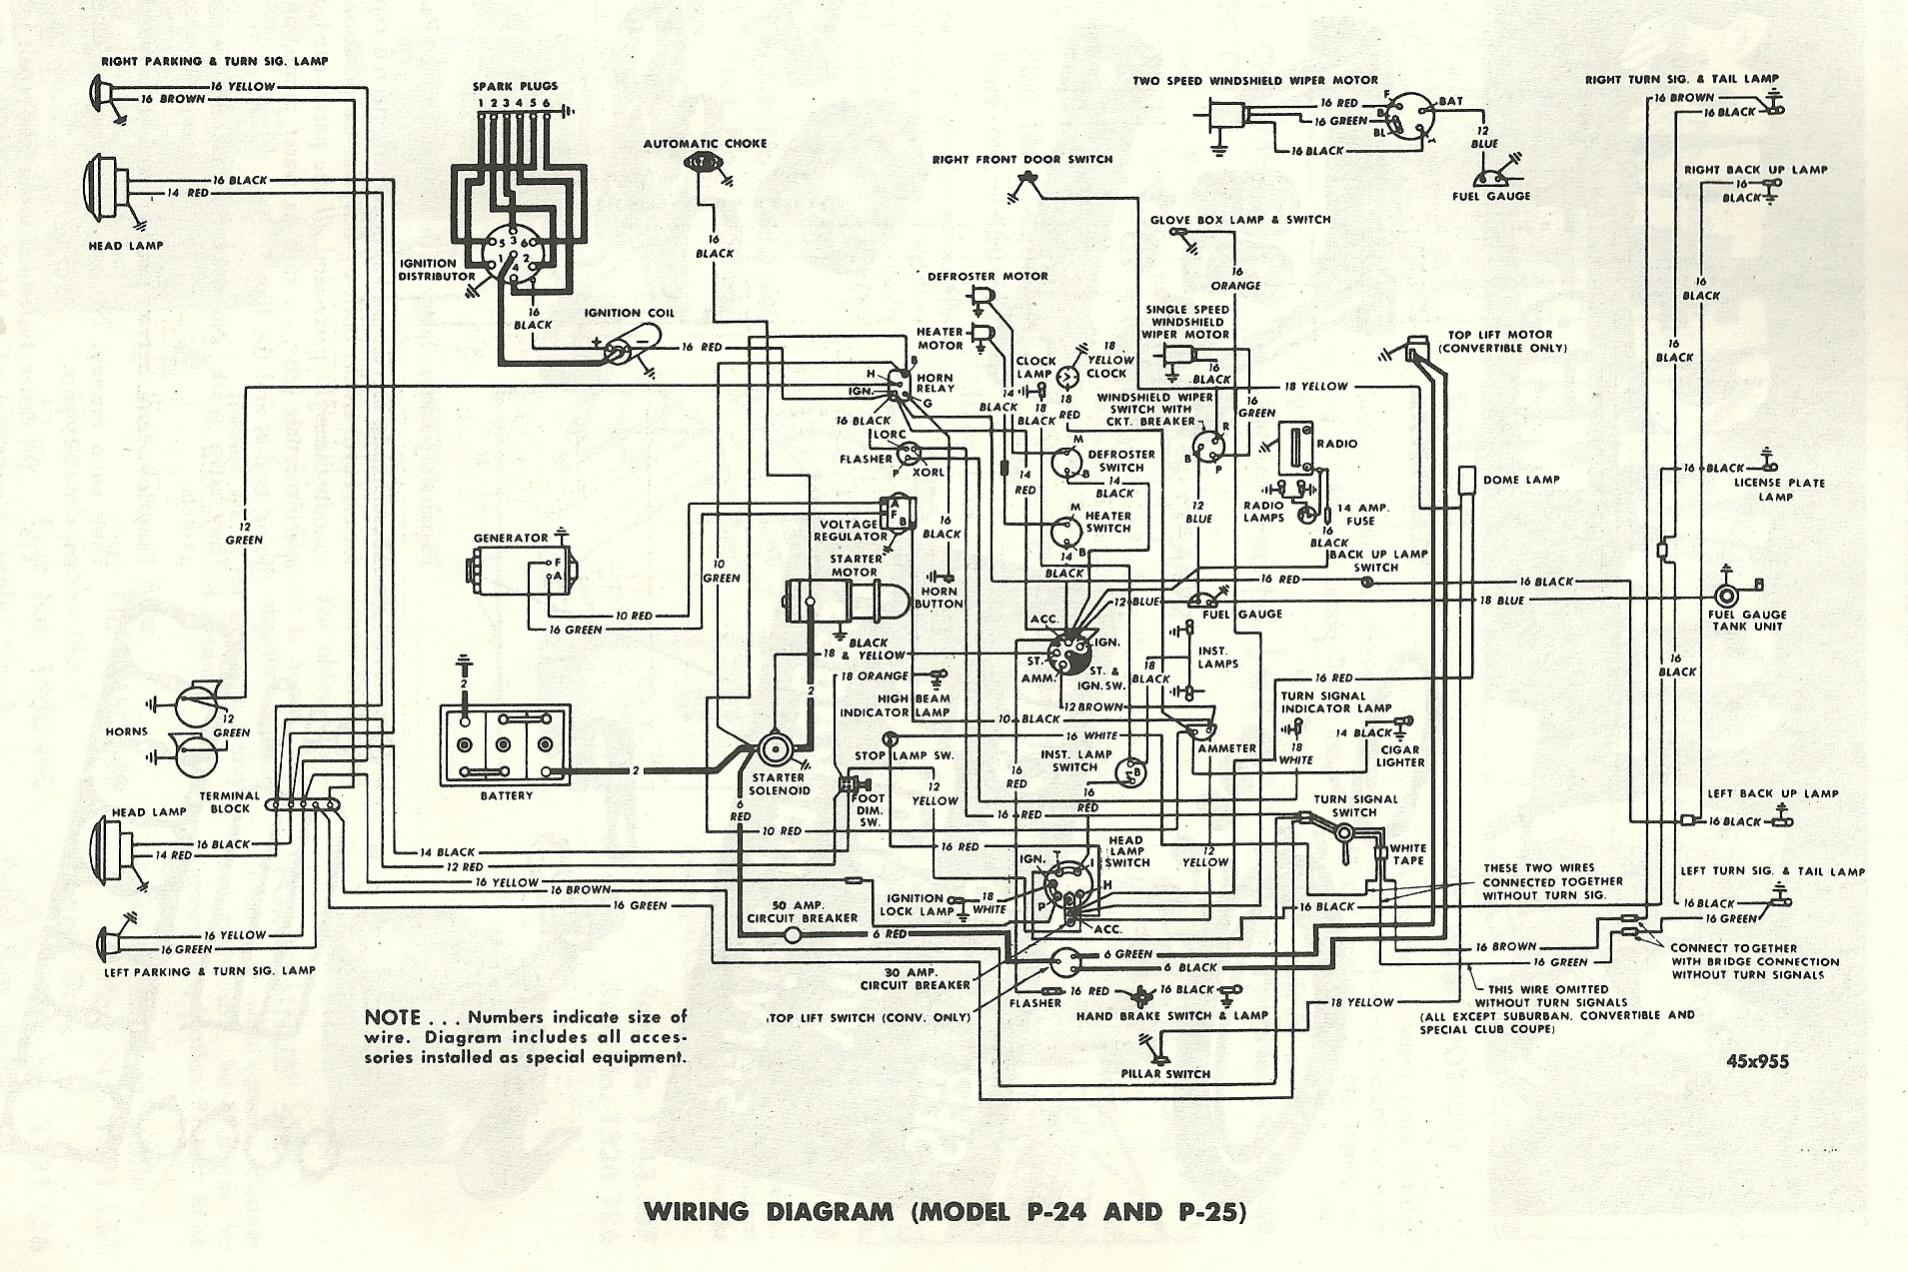 1948 Chevy Car Wiring Diagram - Trusted Wiring Diagram on 1957 chevrolet ignition diagram, 1957 horn diagram, 1957 chevy fuse box diagram, ignition switch schematic diagram, distributor wiring diagram,